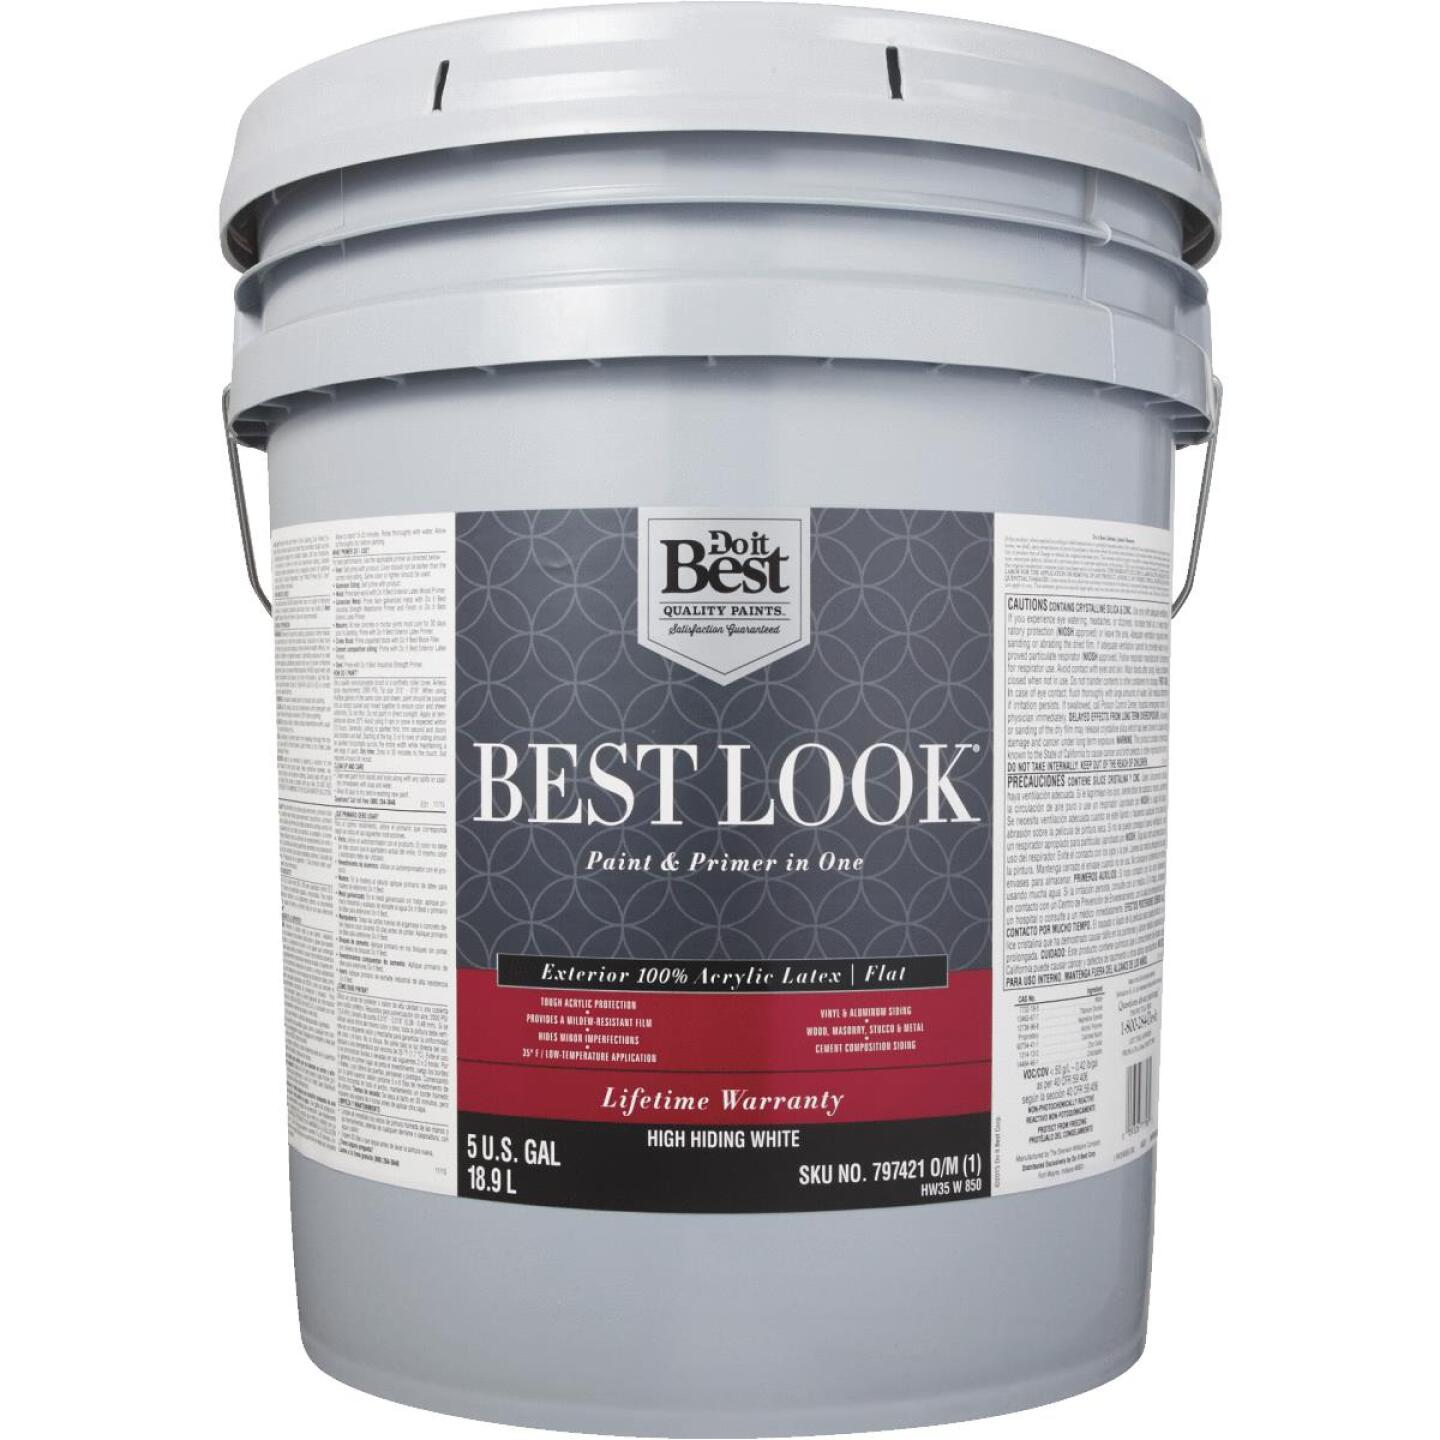 Best Look 100% Acrylic Latex Paint & Primer In One Flat Exterior House Paint, High Hiding White, 5 Gal. Image 2